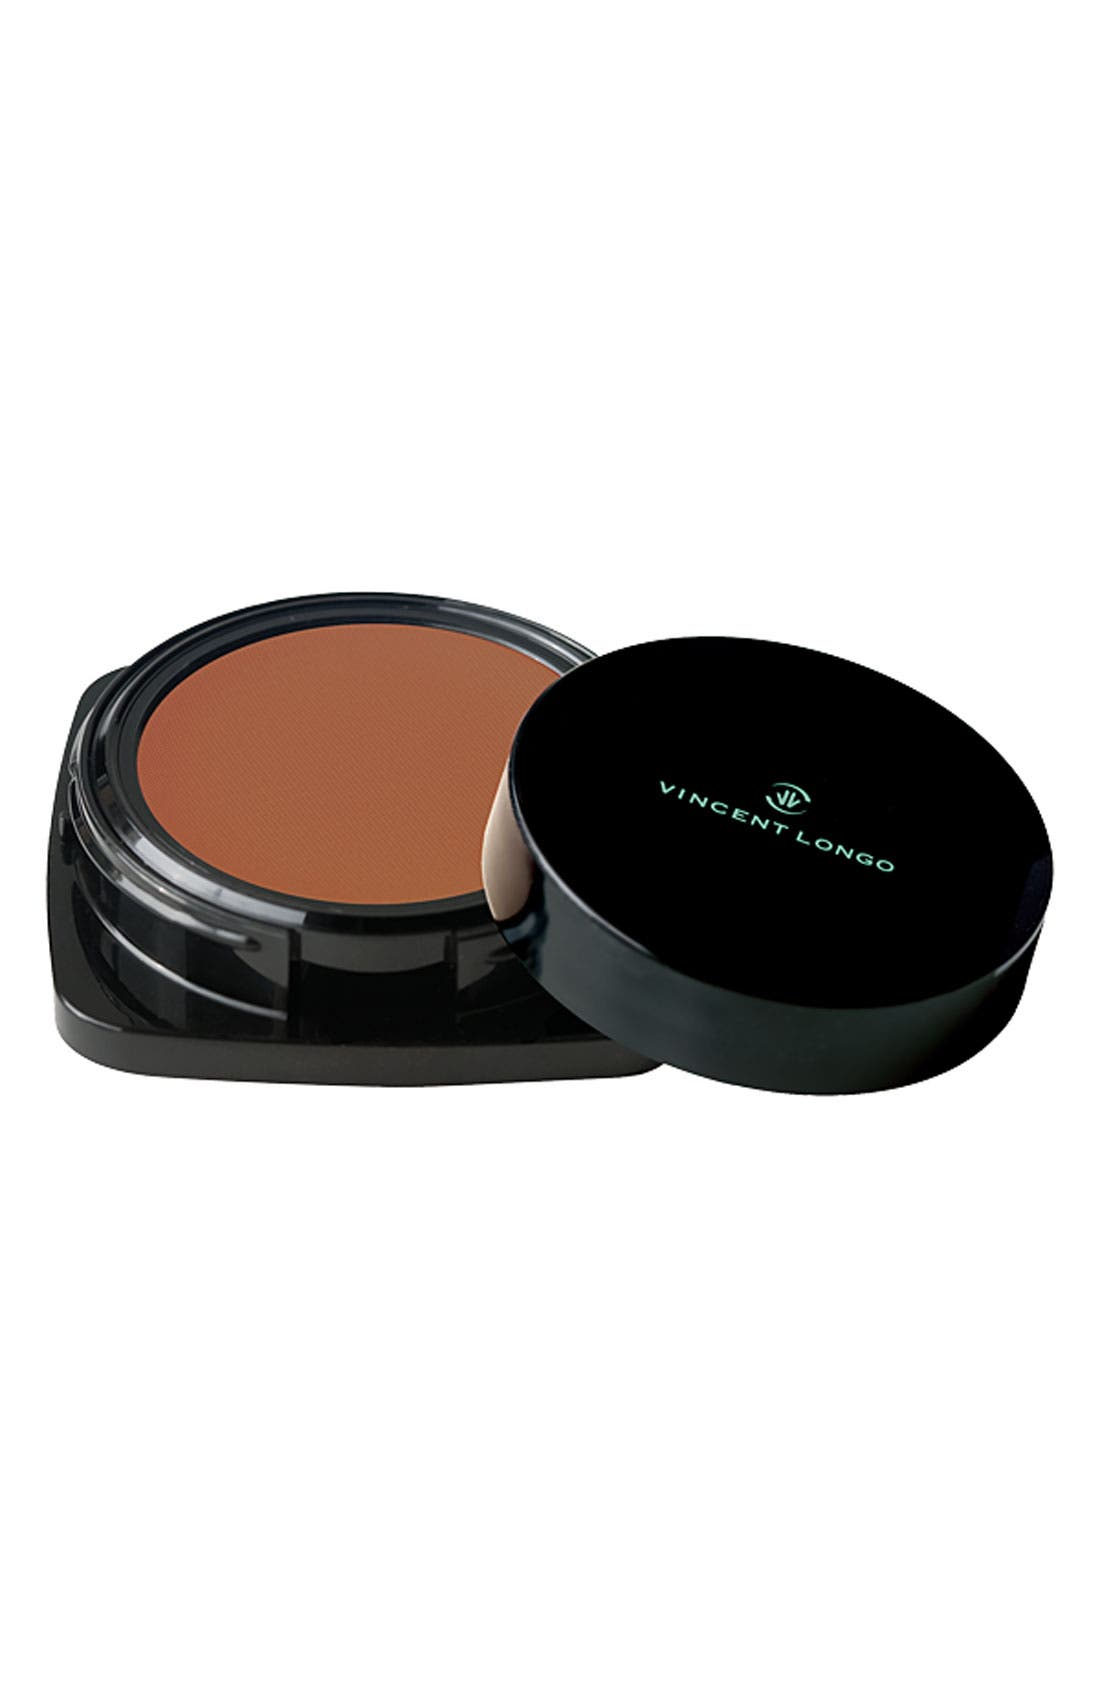 Vincent Longo 'Water Canvas' Crème-to-Powder Foundation